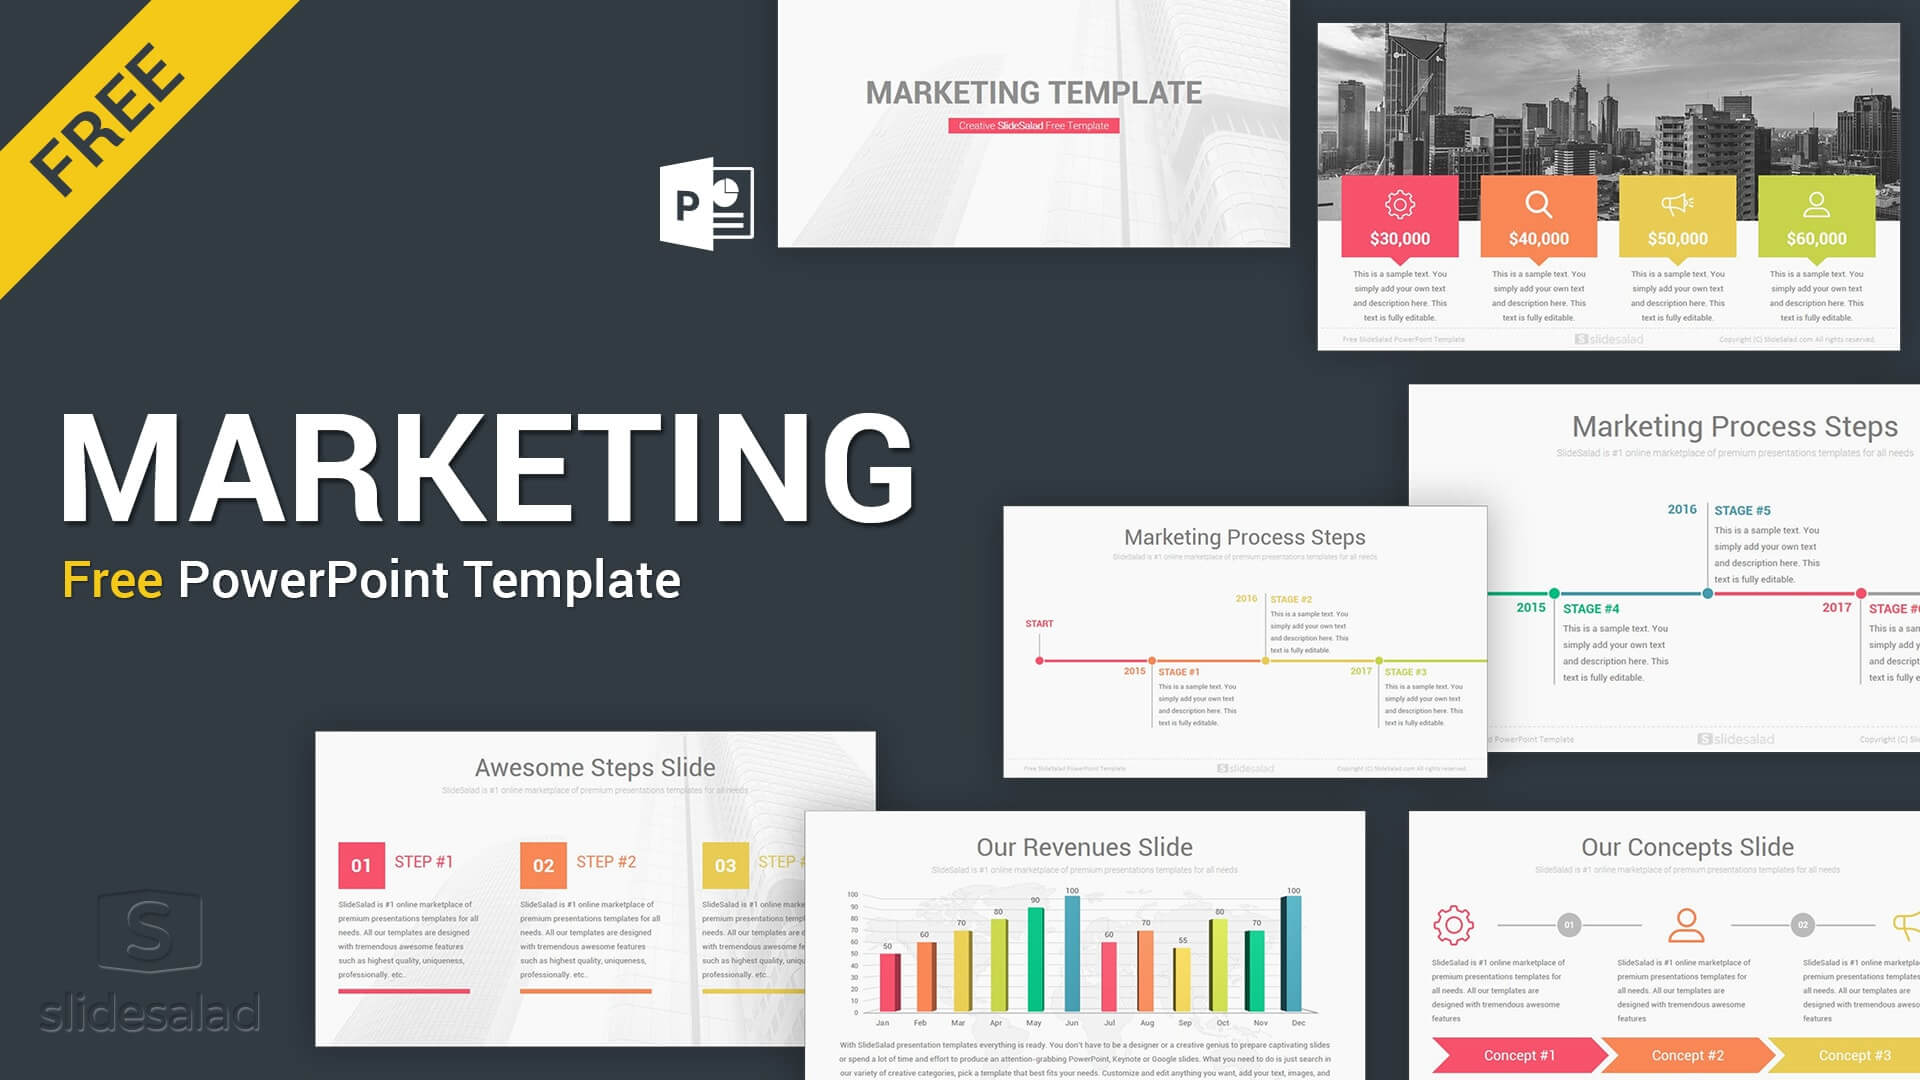 Marketing Free Download Powerpoint Template Slides – Slidesalad Throughout Powerpoint Sample Templates Free Download